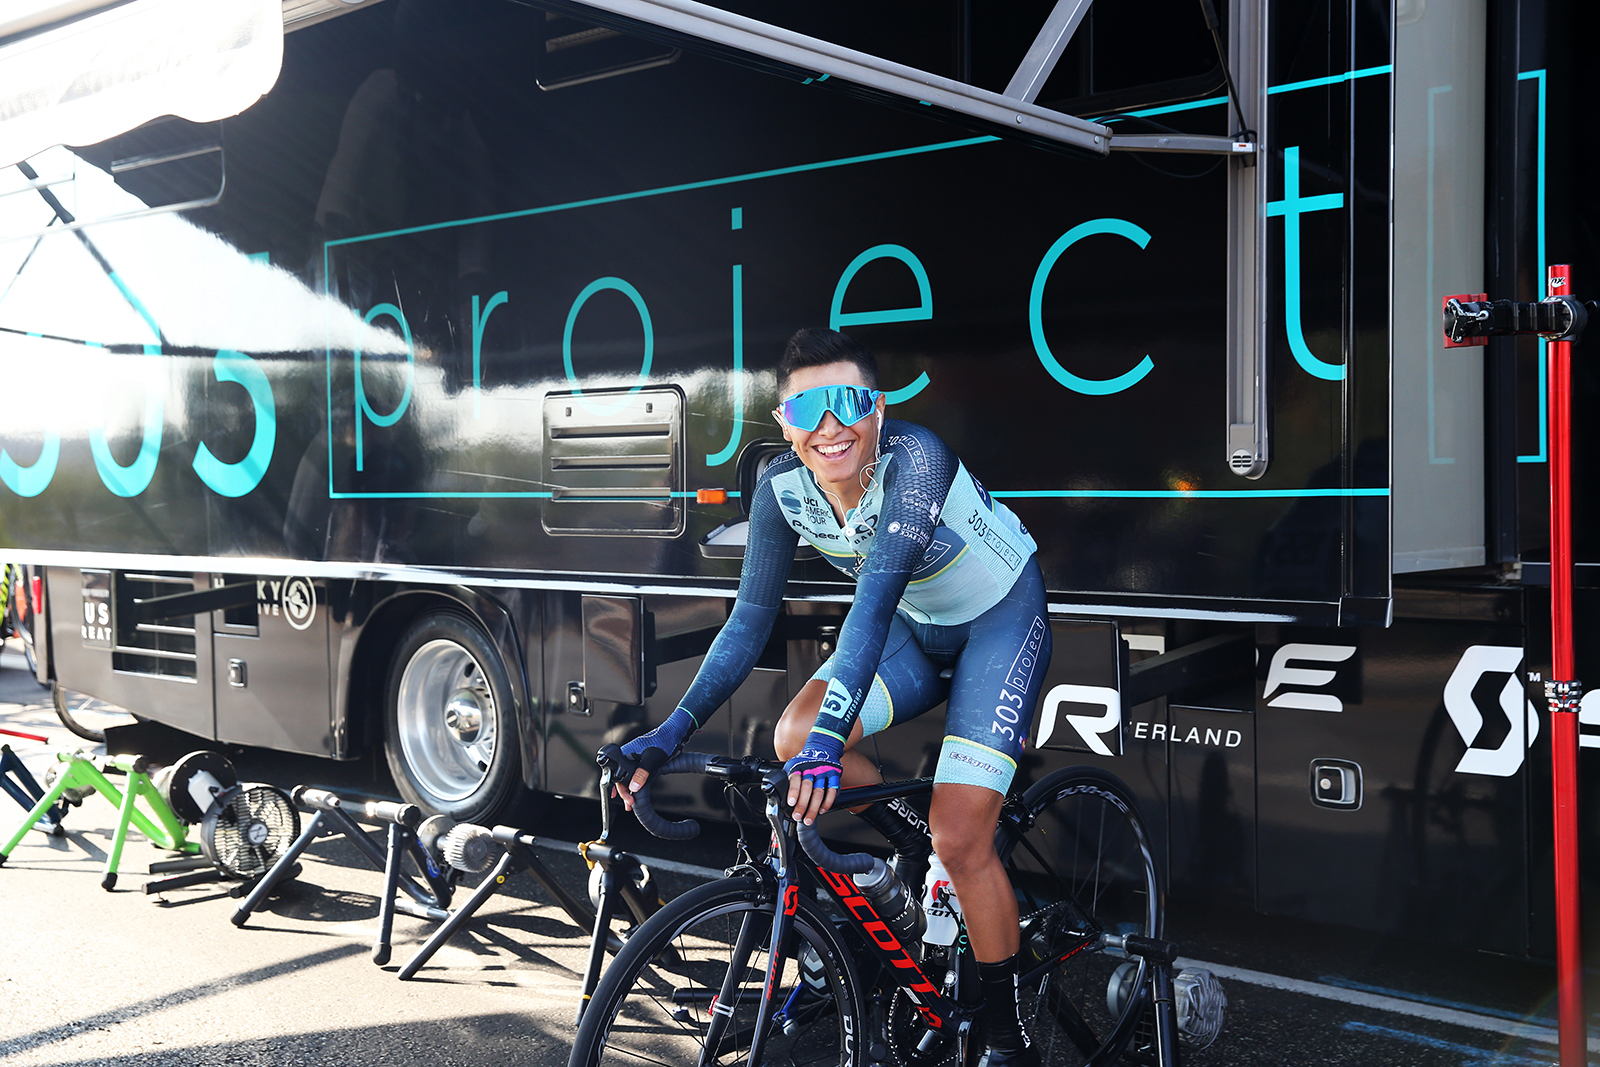 303 Project.  2018 Tour of Utah Team Prologue, August 6, 2018, St. George, Utah. Photo by Cathy Fegan-Kim, cottonsoxphotography.net